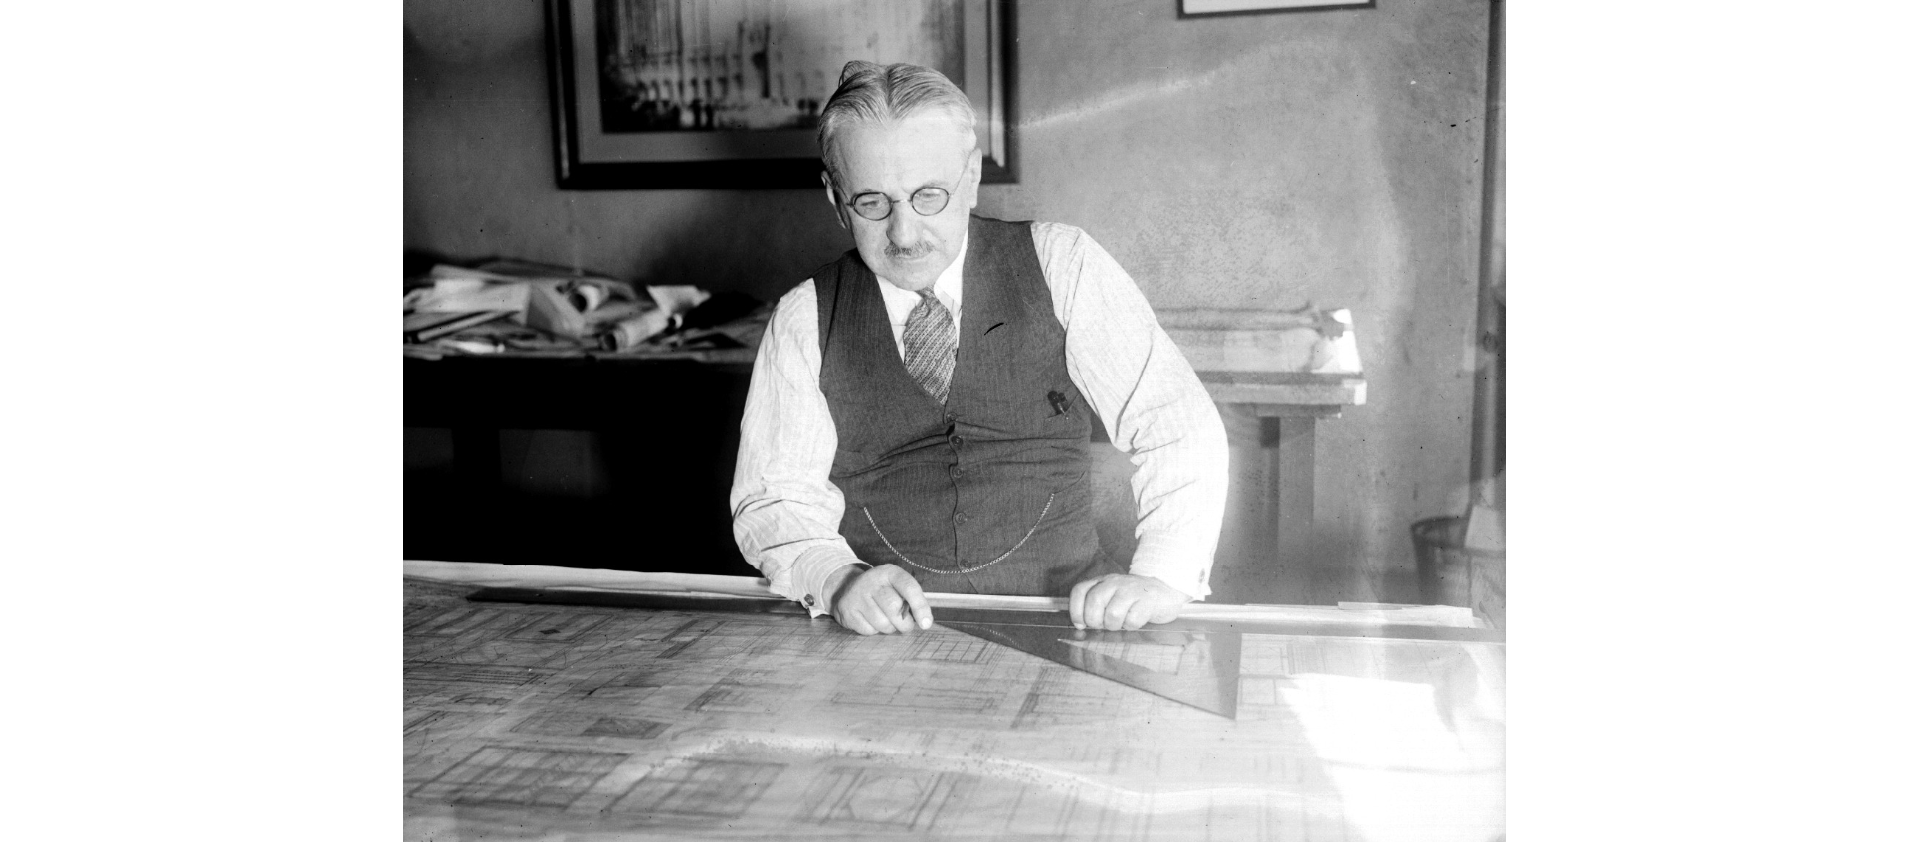 Albert Kahn, whose designs influenced an era in American industrial architecture. Many of his huge automotive plants were converted to military production during World War II (Wayne State University Libraries).